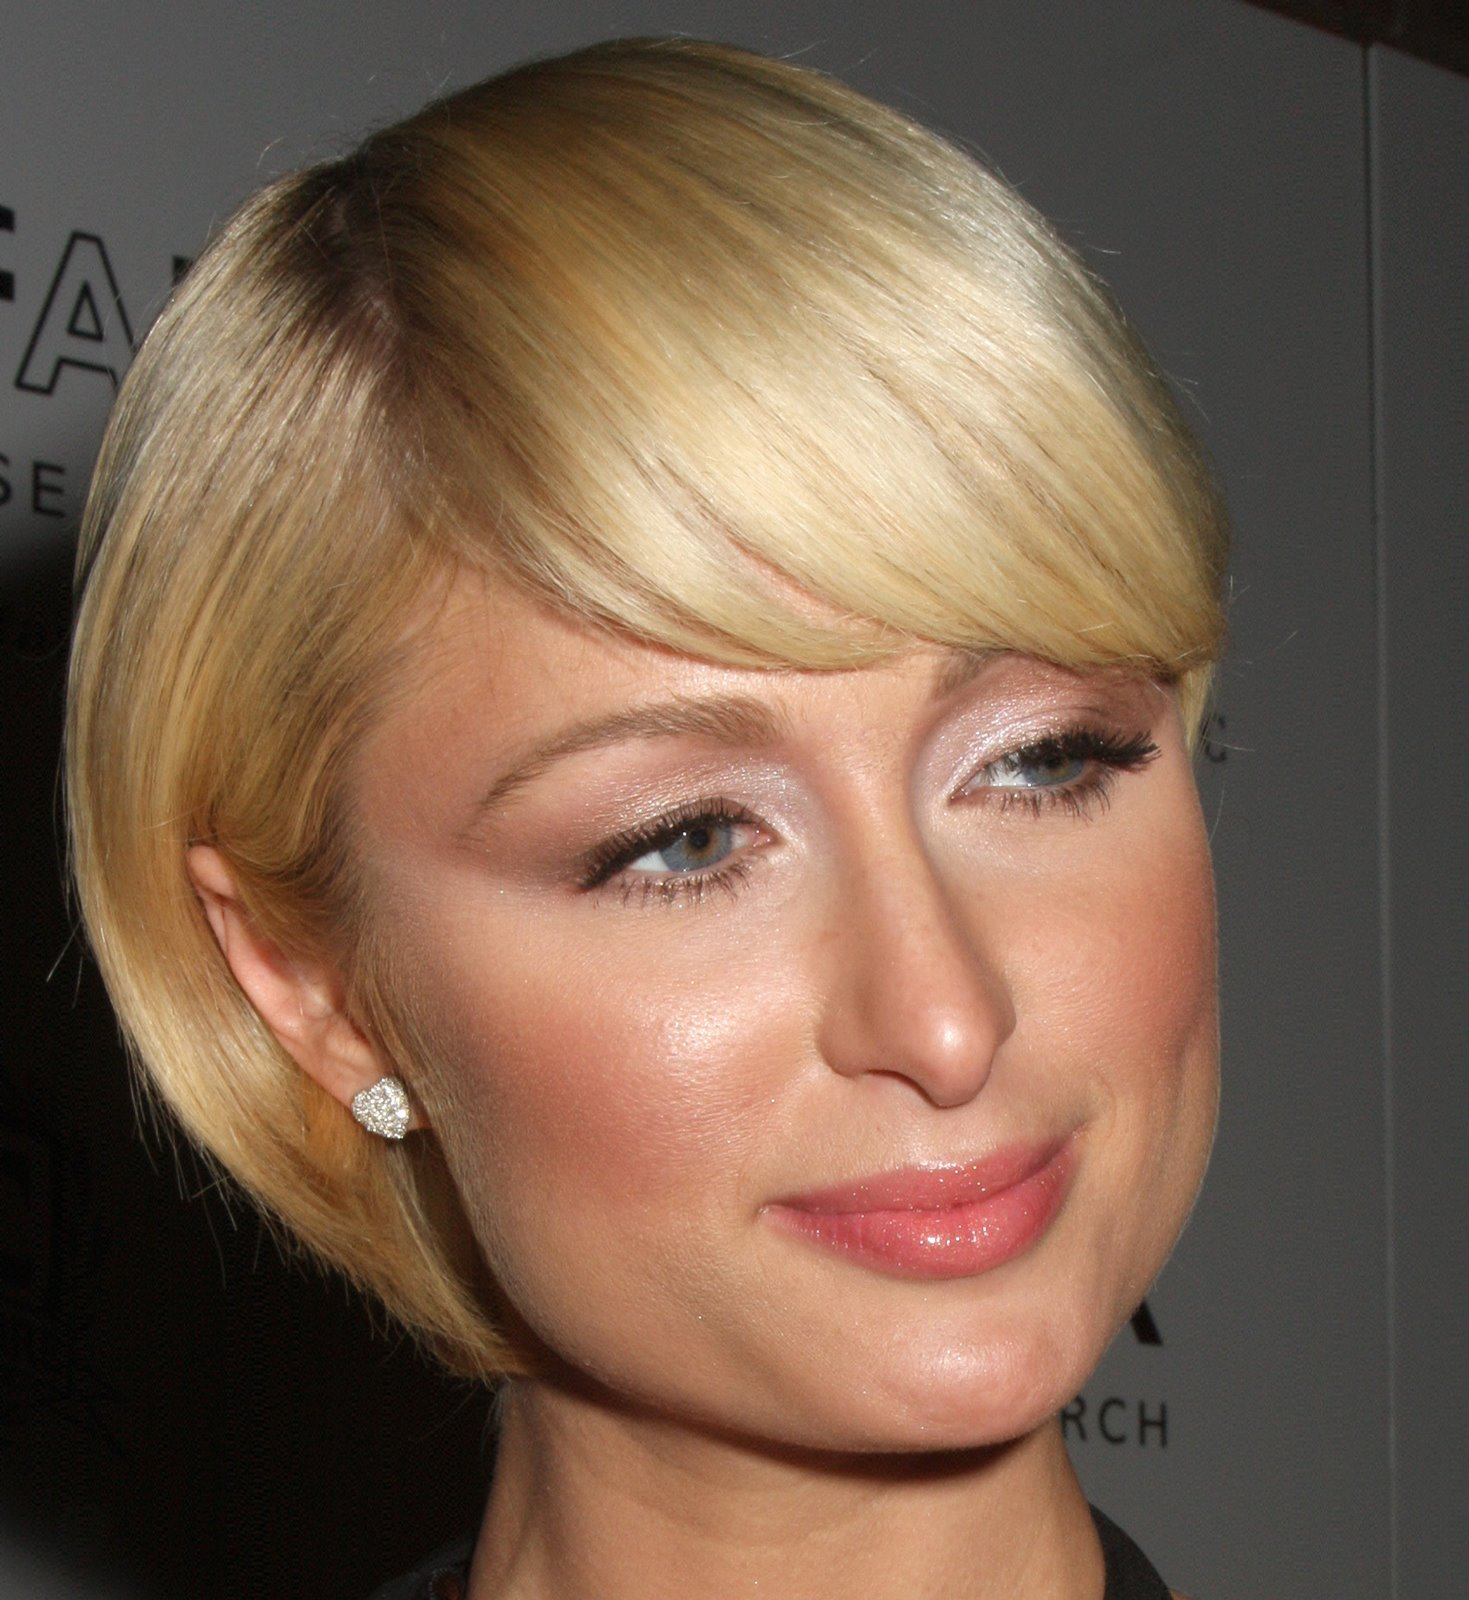 Square Shaped Face Hairstyles: Hair Styles Square Face